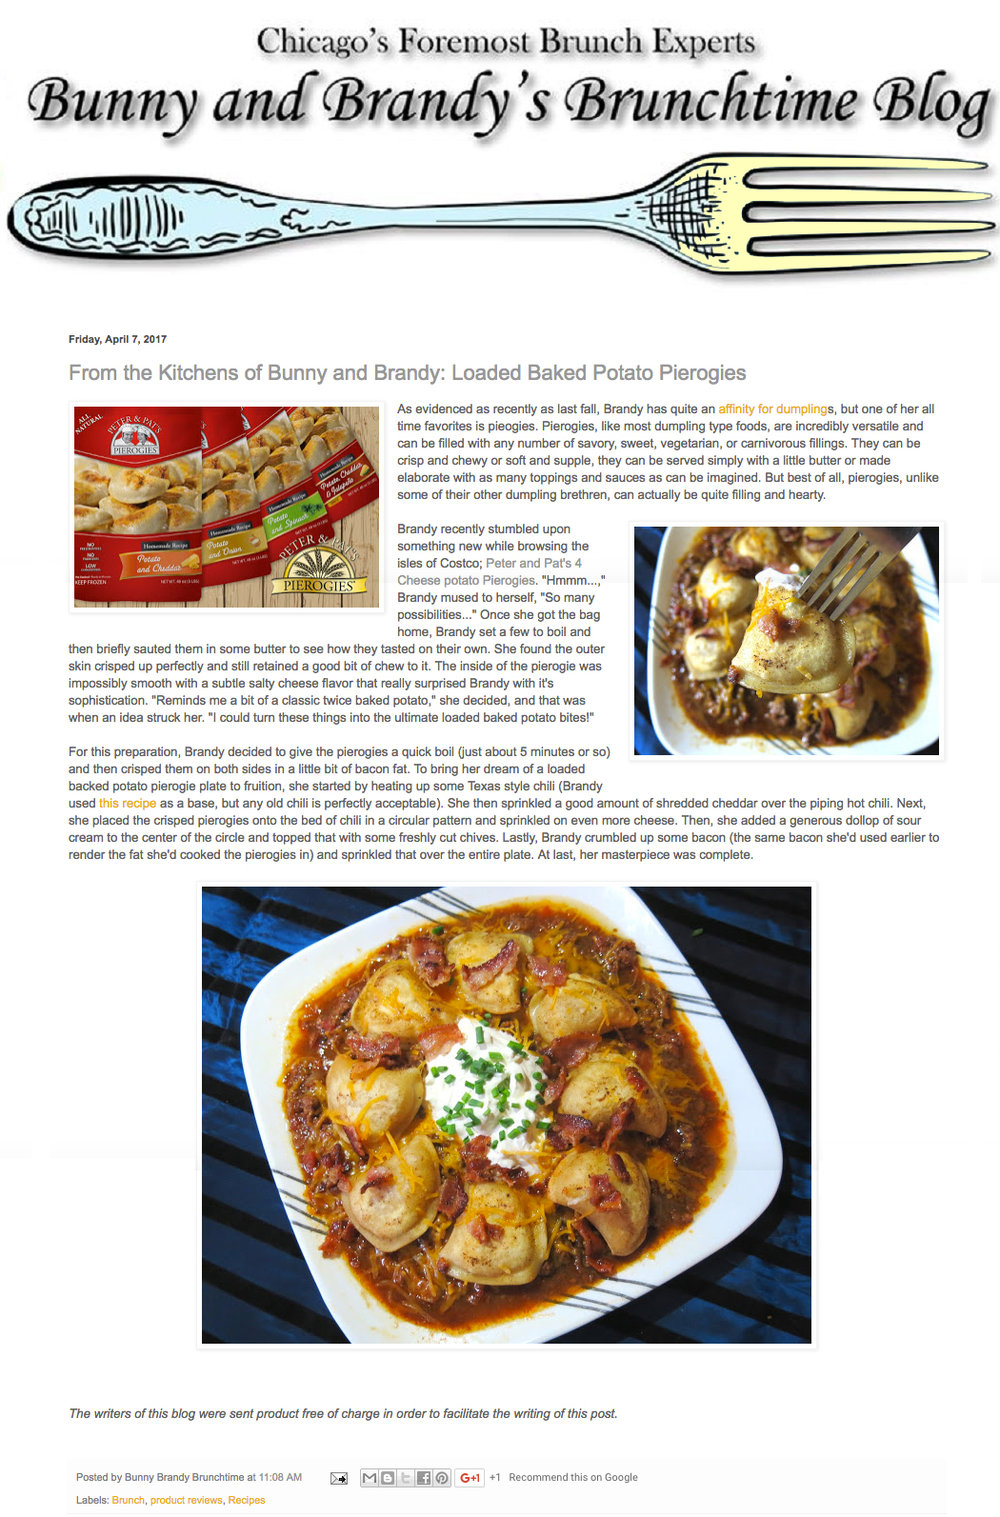 Peter & Pat's Pierogies featured on  Bunny and Brandy's Brunchtime blog